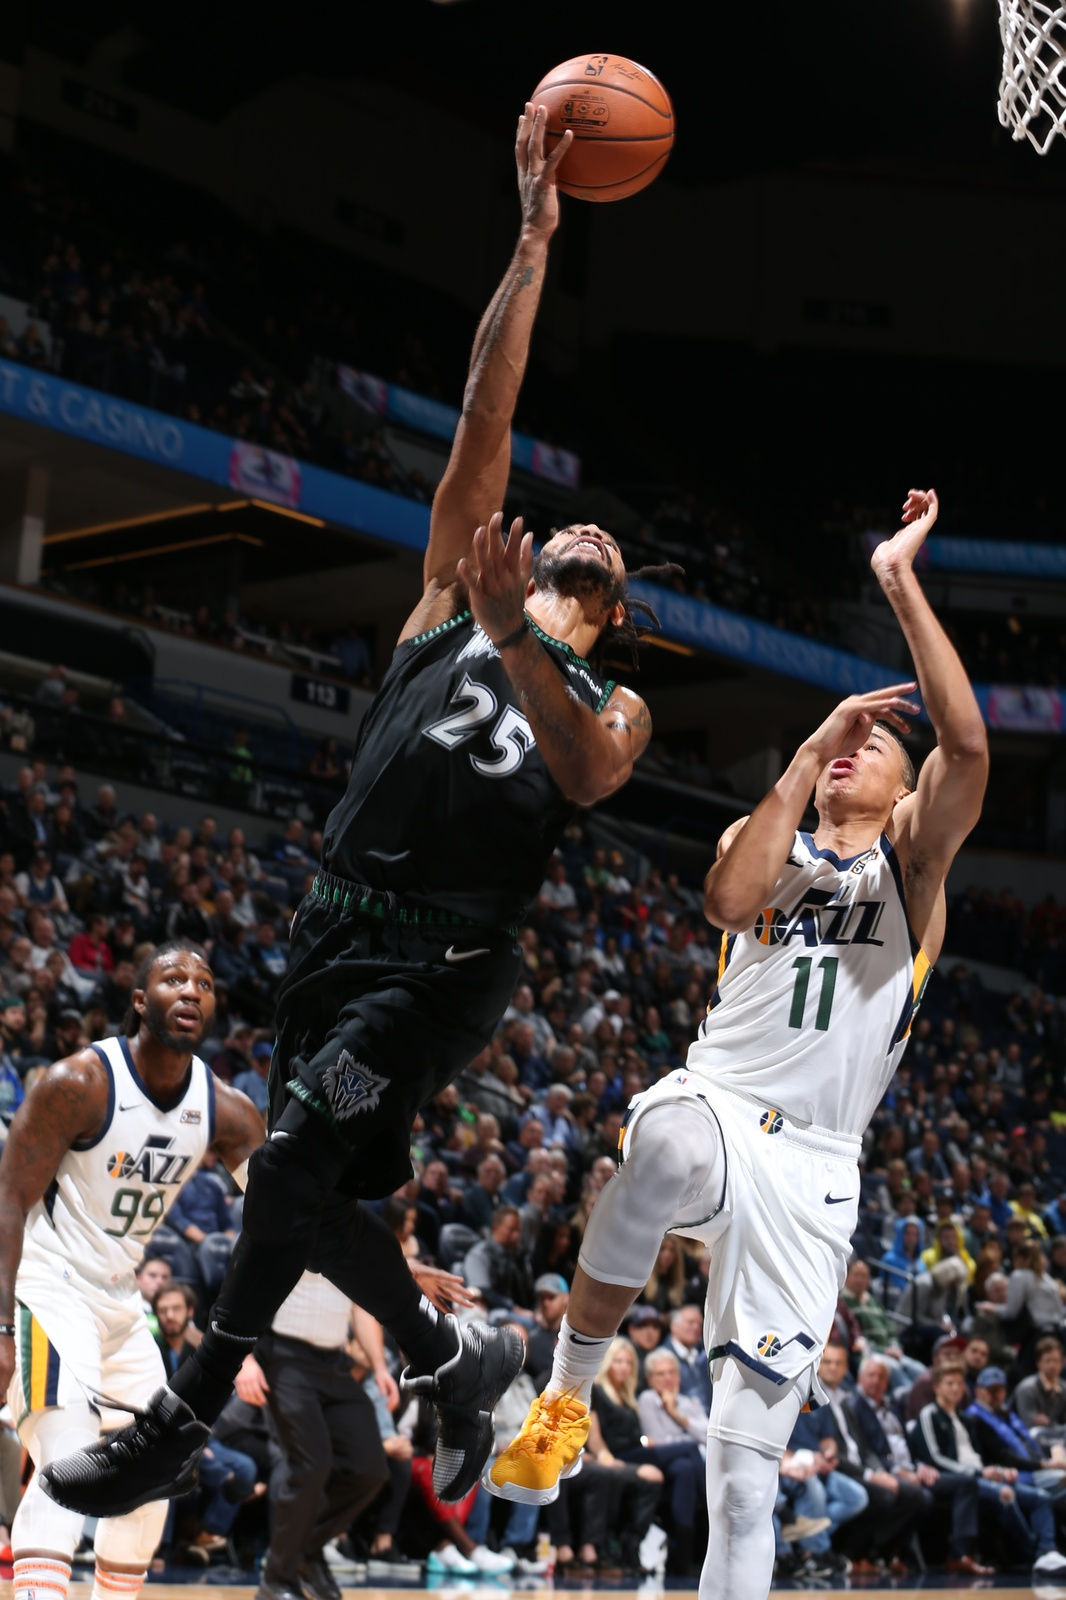 a2720dc7e023 Derrick Rose performs a layup in a game against the Utah Jazz